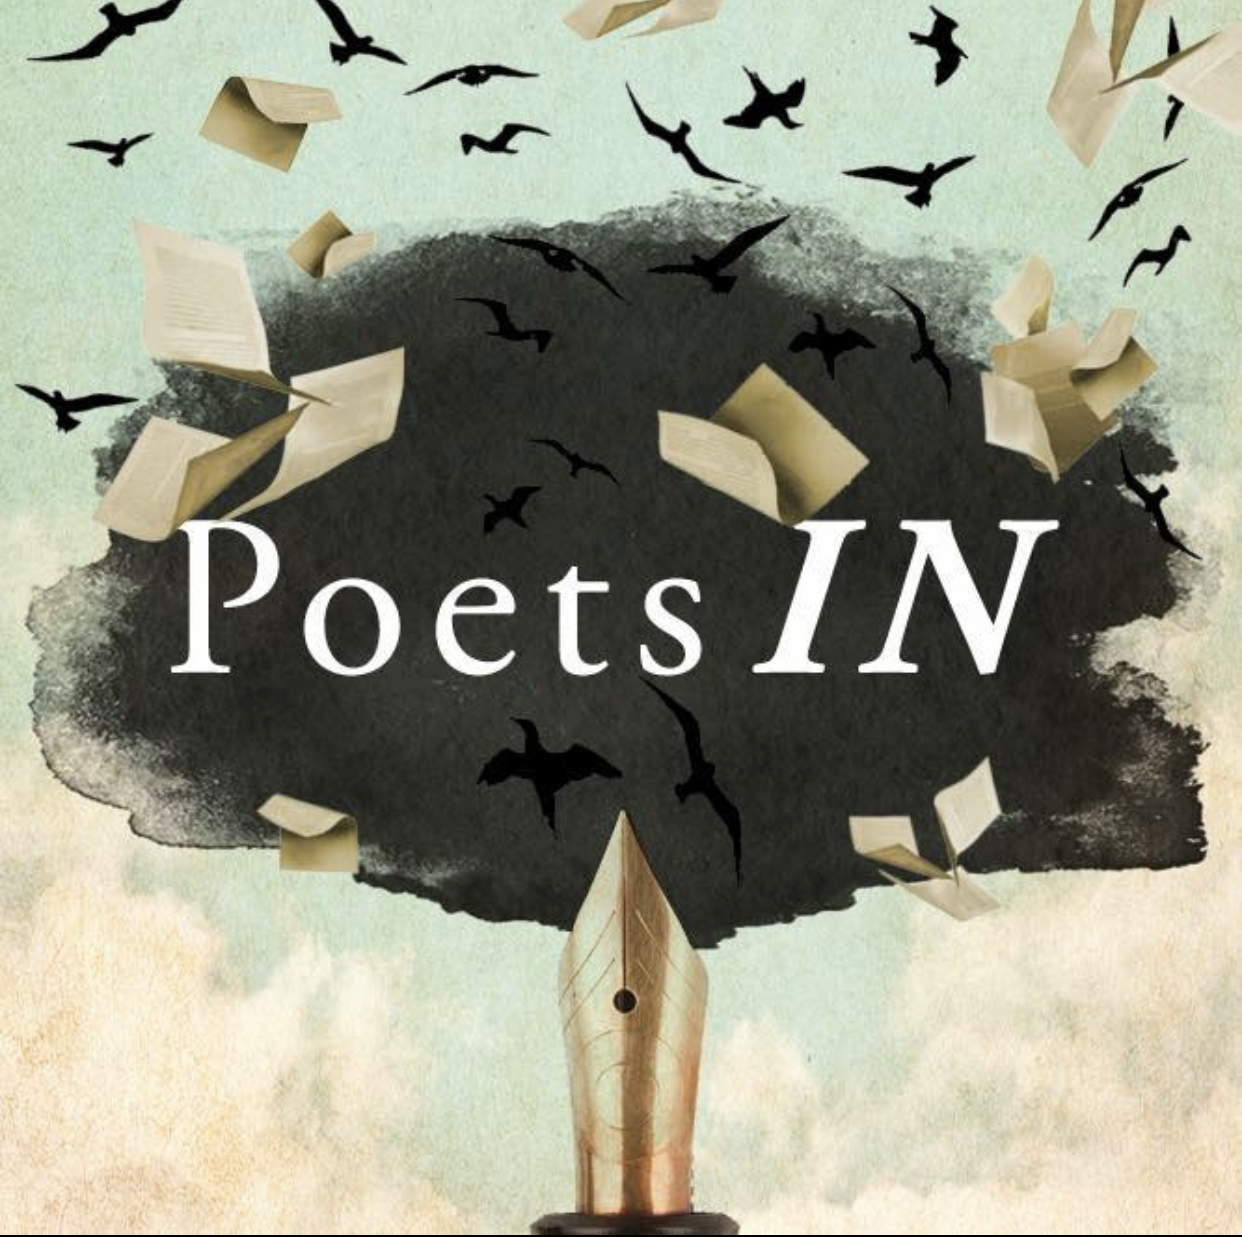 PoetsIN is an award-winning charity with one simple goal – to help those in need heal, learn, and grow with the power of words delivered through a UK-wide programme of online and in-person creative writing workshops, mentorship programs, and listening programs. Utilizing written expression and arts as an outlet for both children and adults  We will be working closely with Poets in and providing non -profit pilates and yoga and their future well being event 2019 .  All profit from CLASSIC TEE will be donated to their supported causes.   We look forward to hosting an event with POETSin during 2019 dates tbc    FIND OUT MORE   https://www.poetsin.com